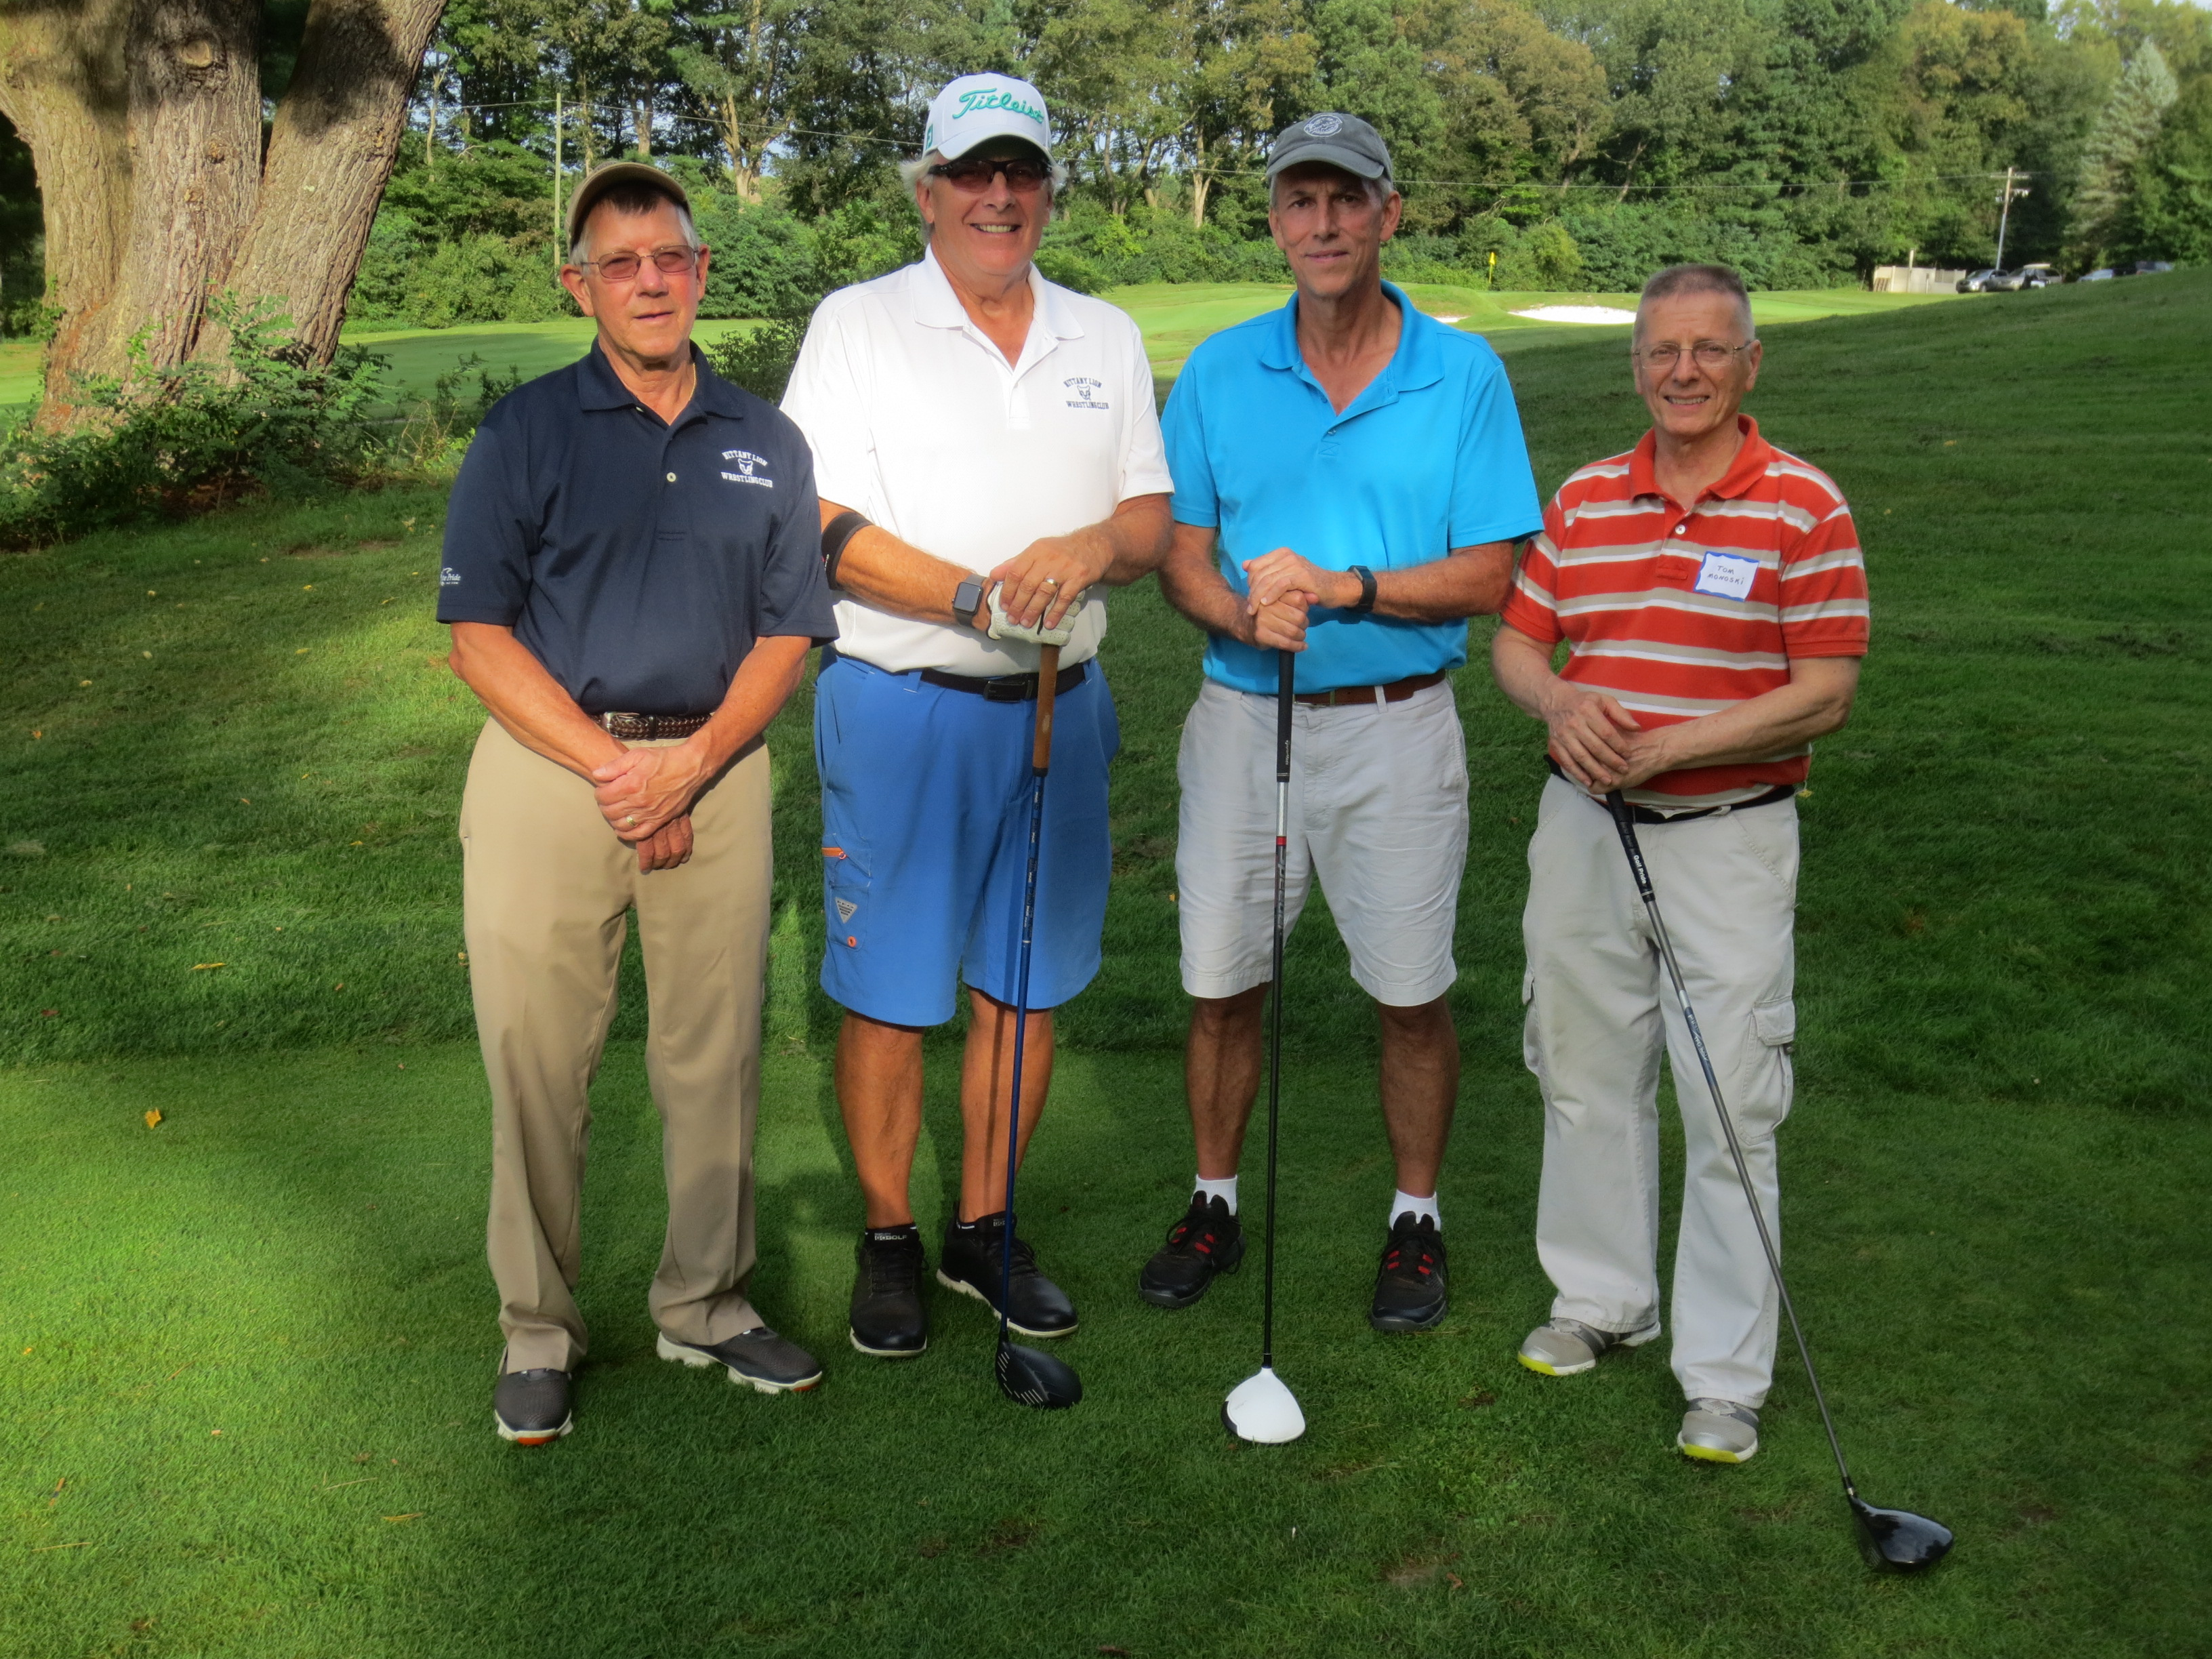 Jerry Lauchle, Terry Cooper, Dave Nelson, Tom Monoski